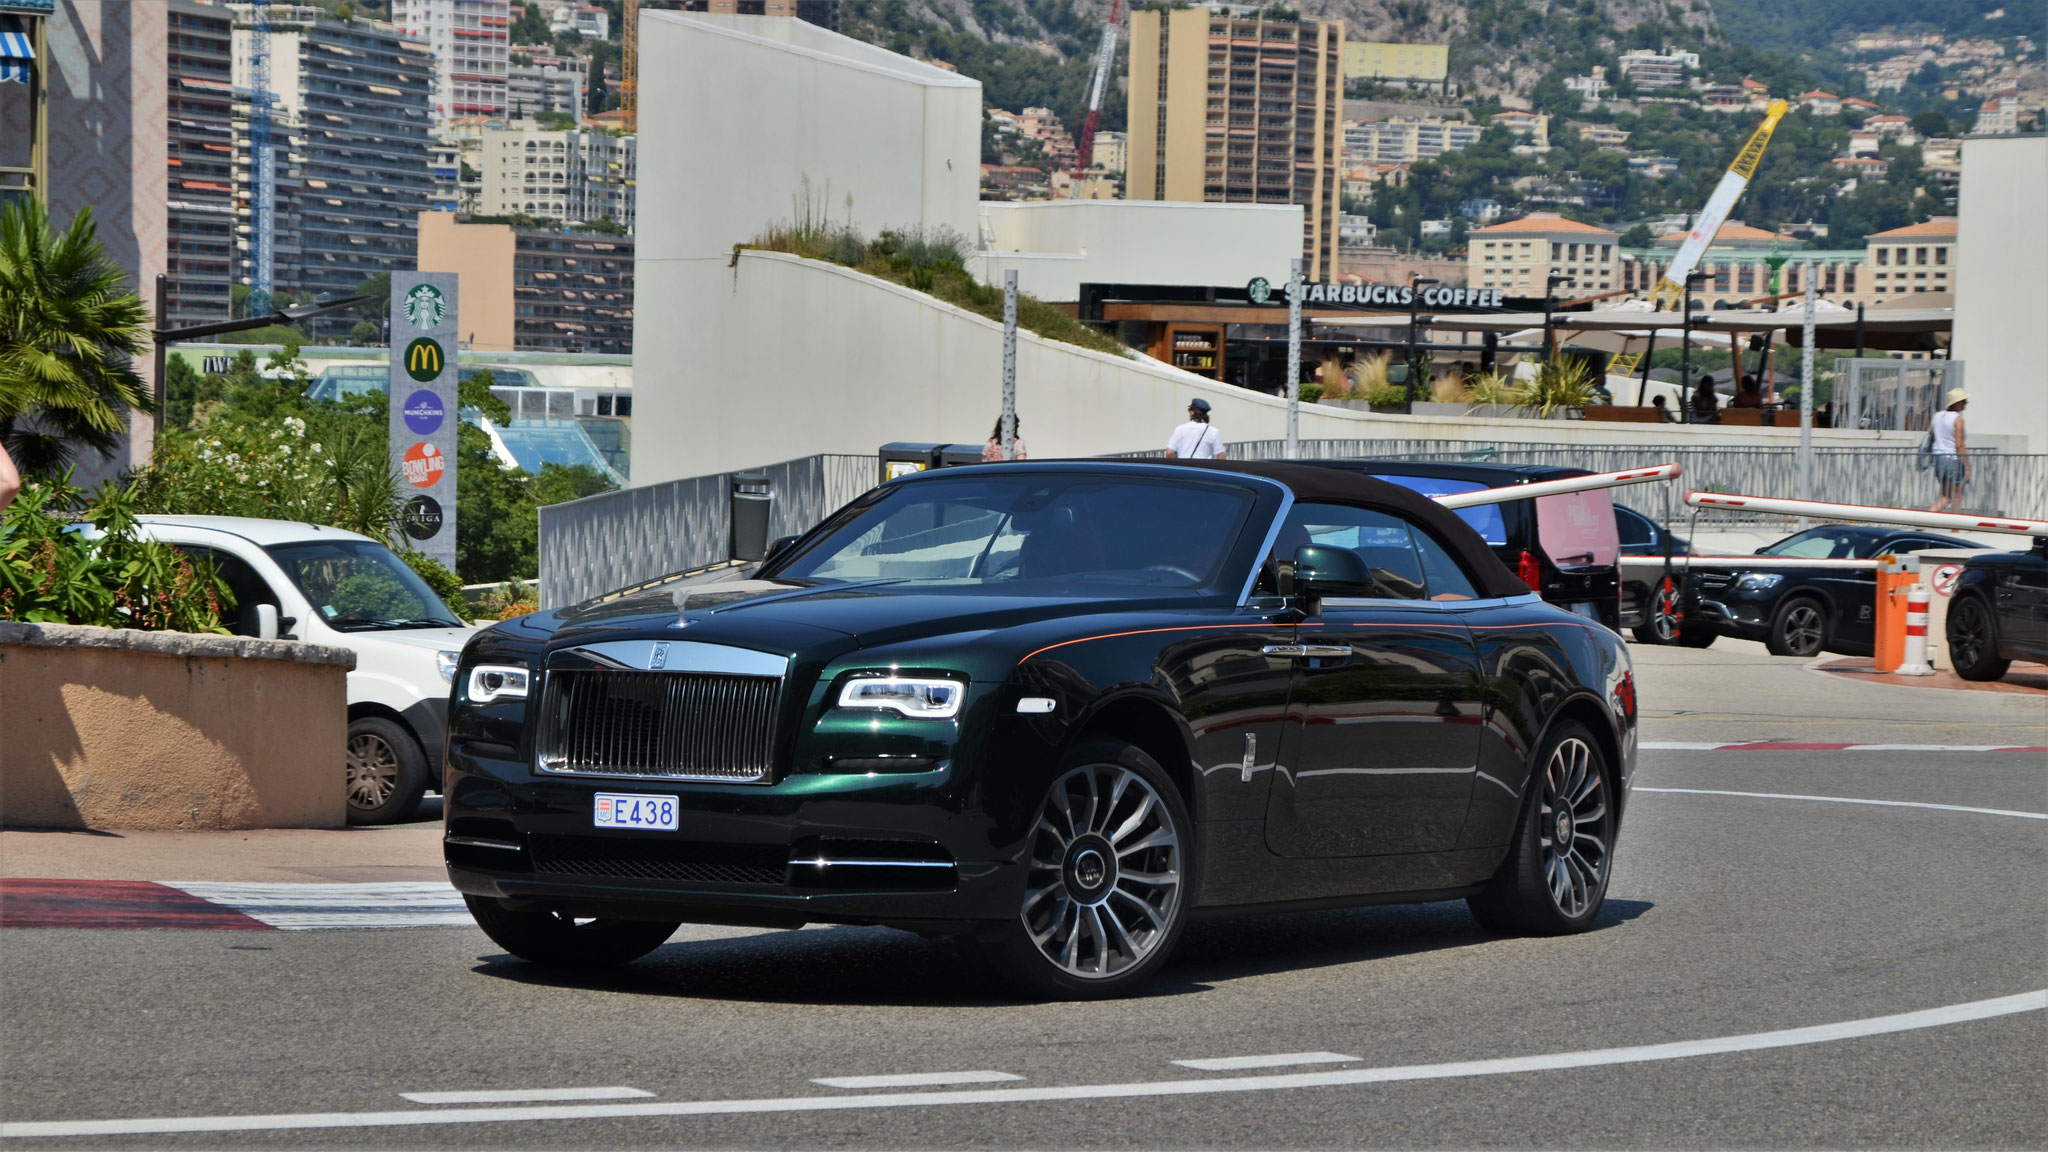 Rolls Royce Dawn - E438 (MC)